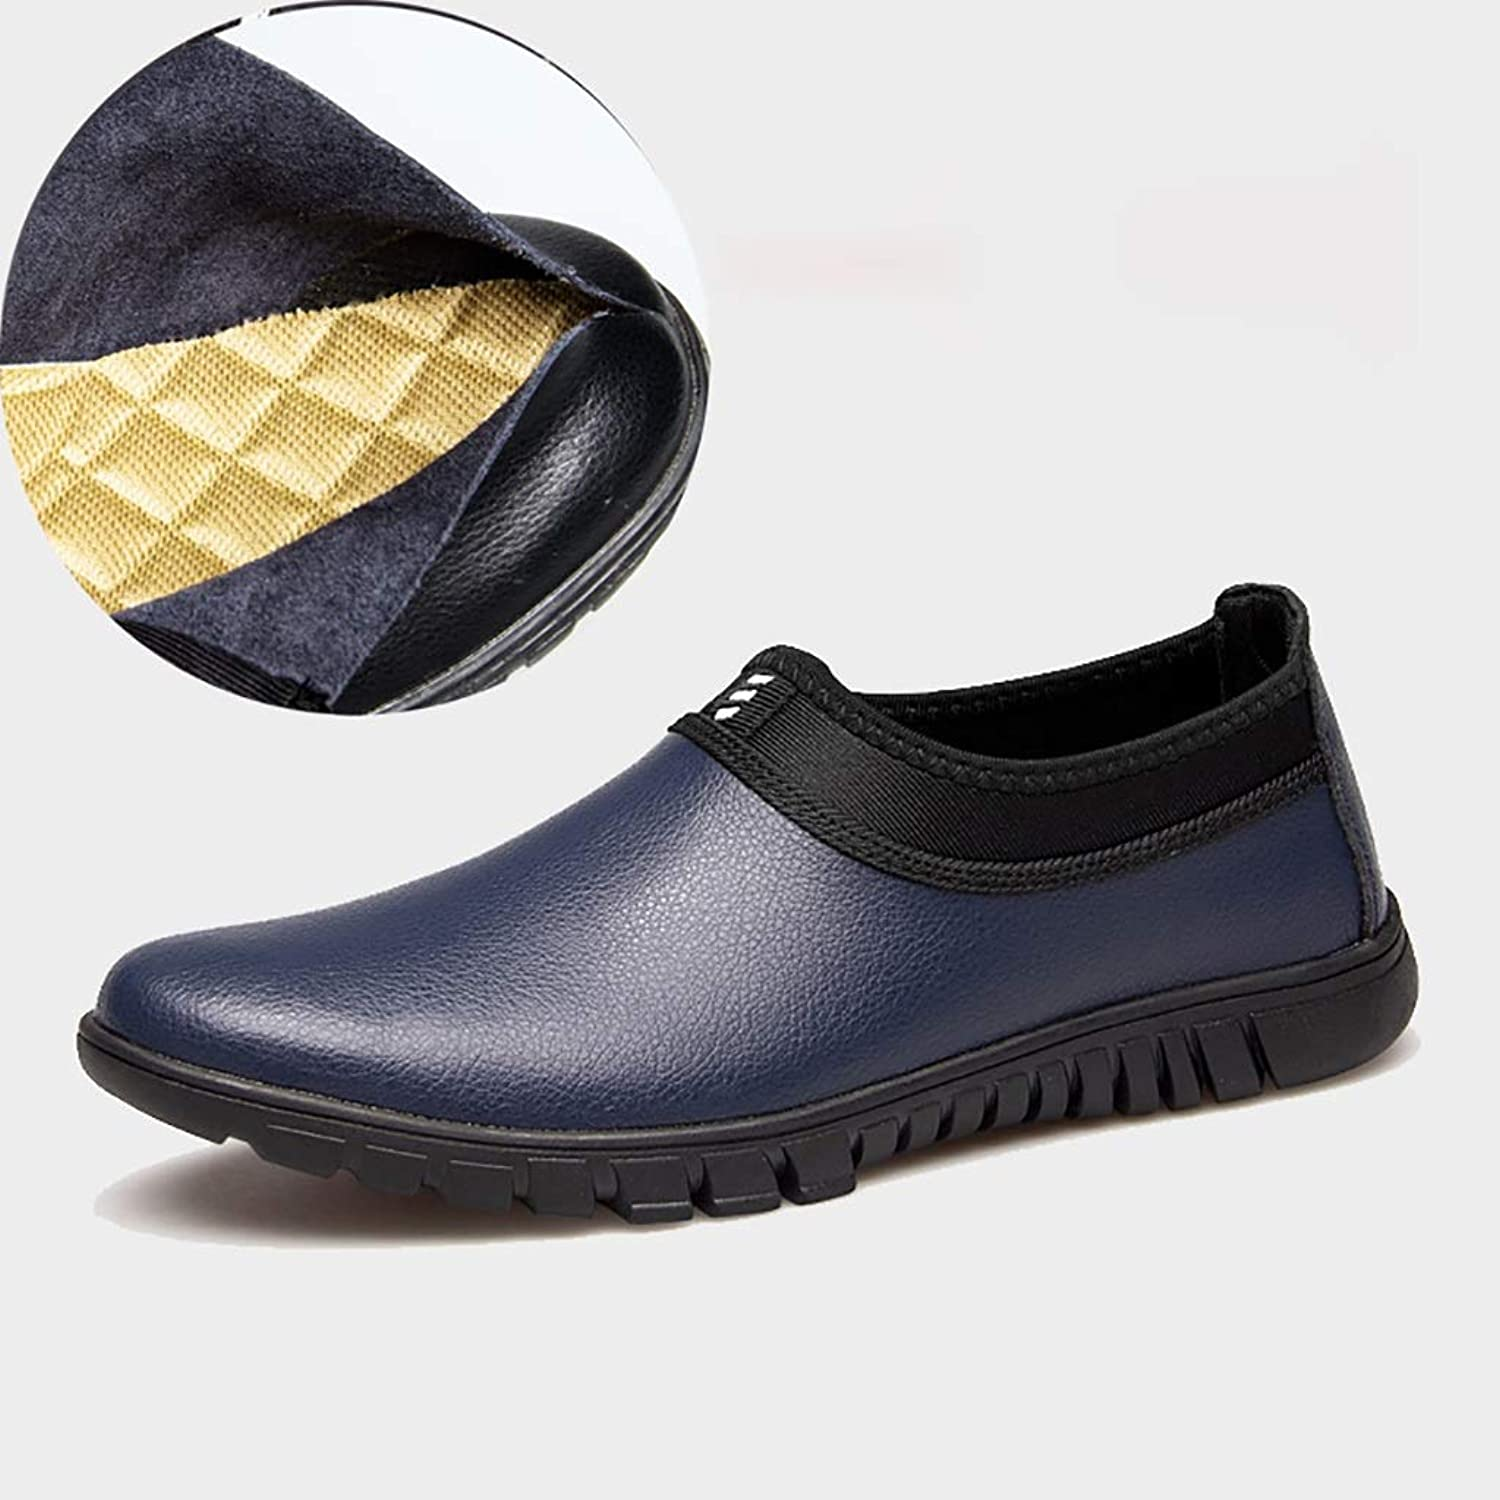 RJNSPx Leather shoes men's leather non-slip shoes, round head wild, no need to tie the laces mens dress shoes (color   bluee, Size   45 EU)